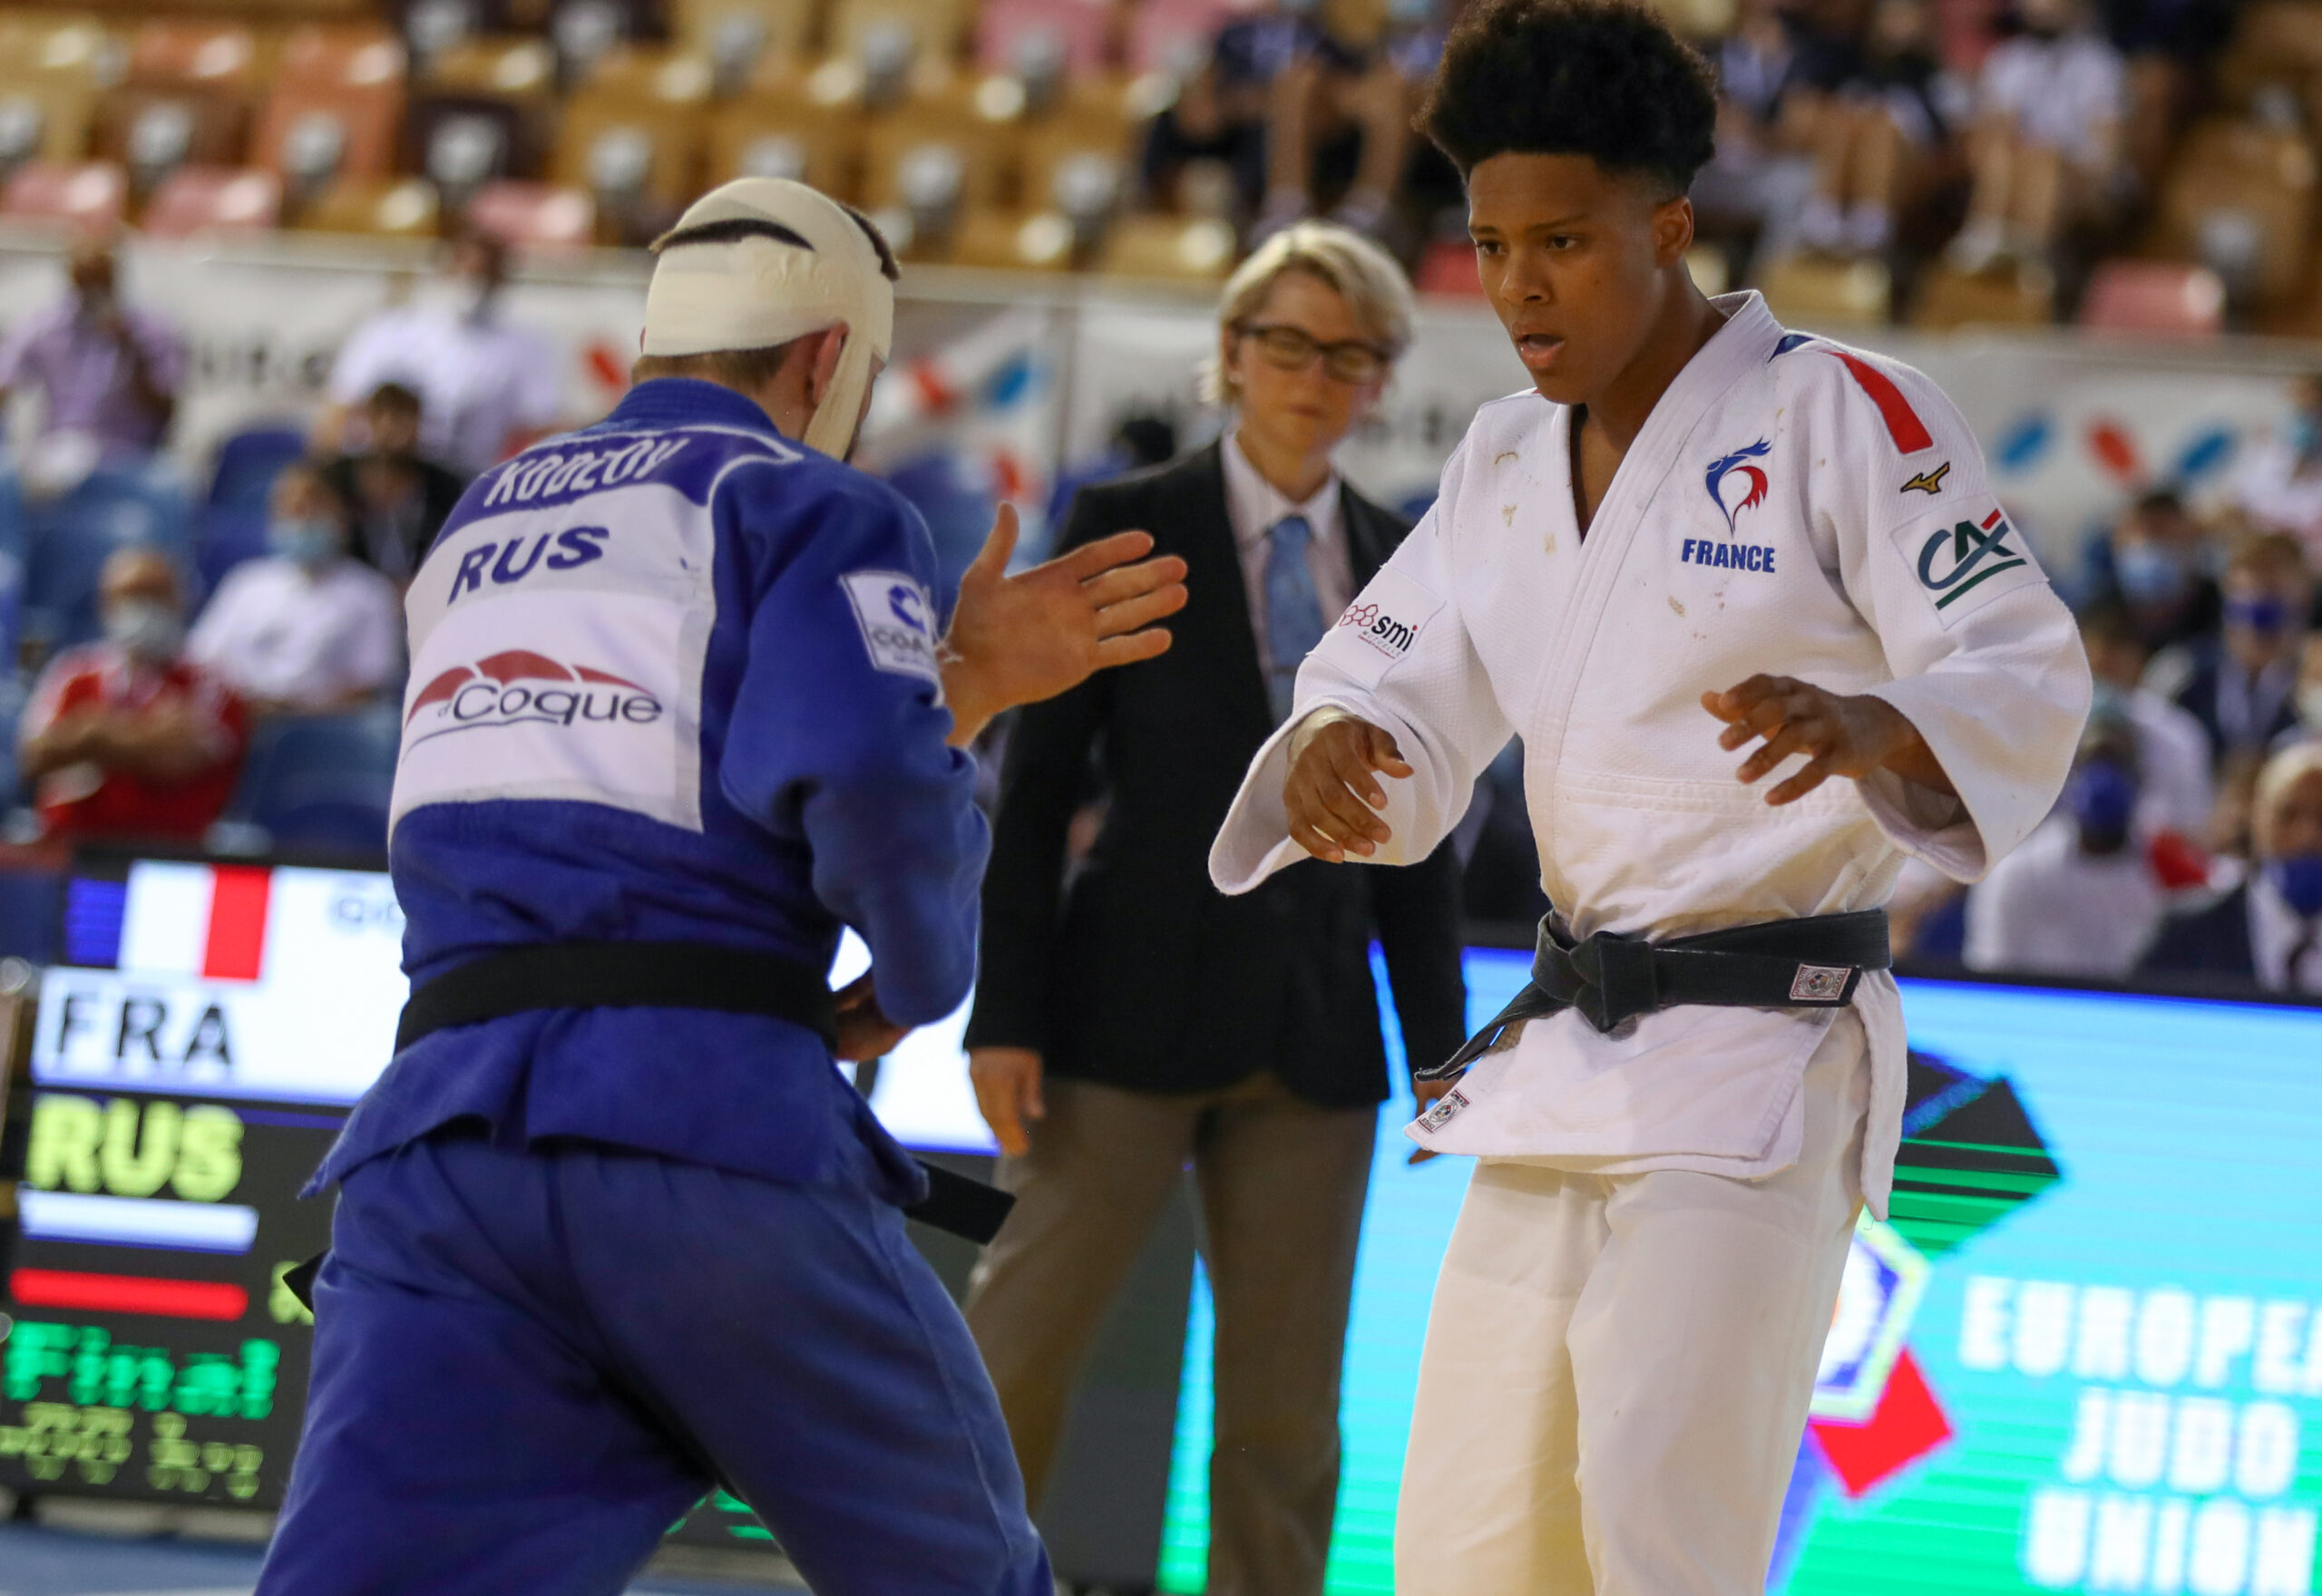 FRANCE AND RUSSIA BATTLE IT OUT FOR TOP SPOT IN THE MEDAL RANKING